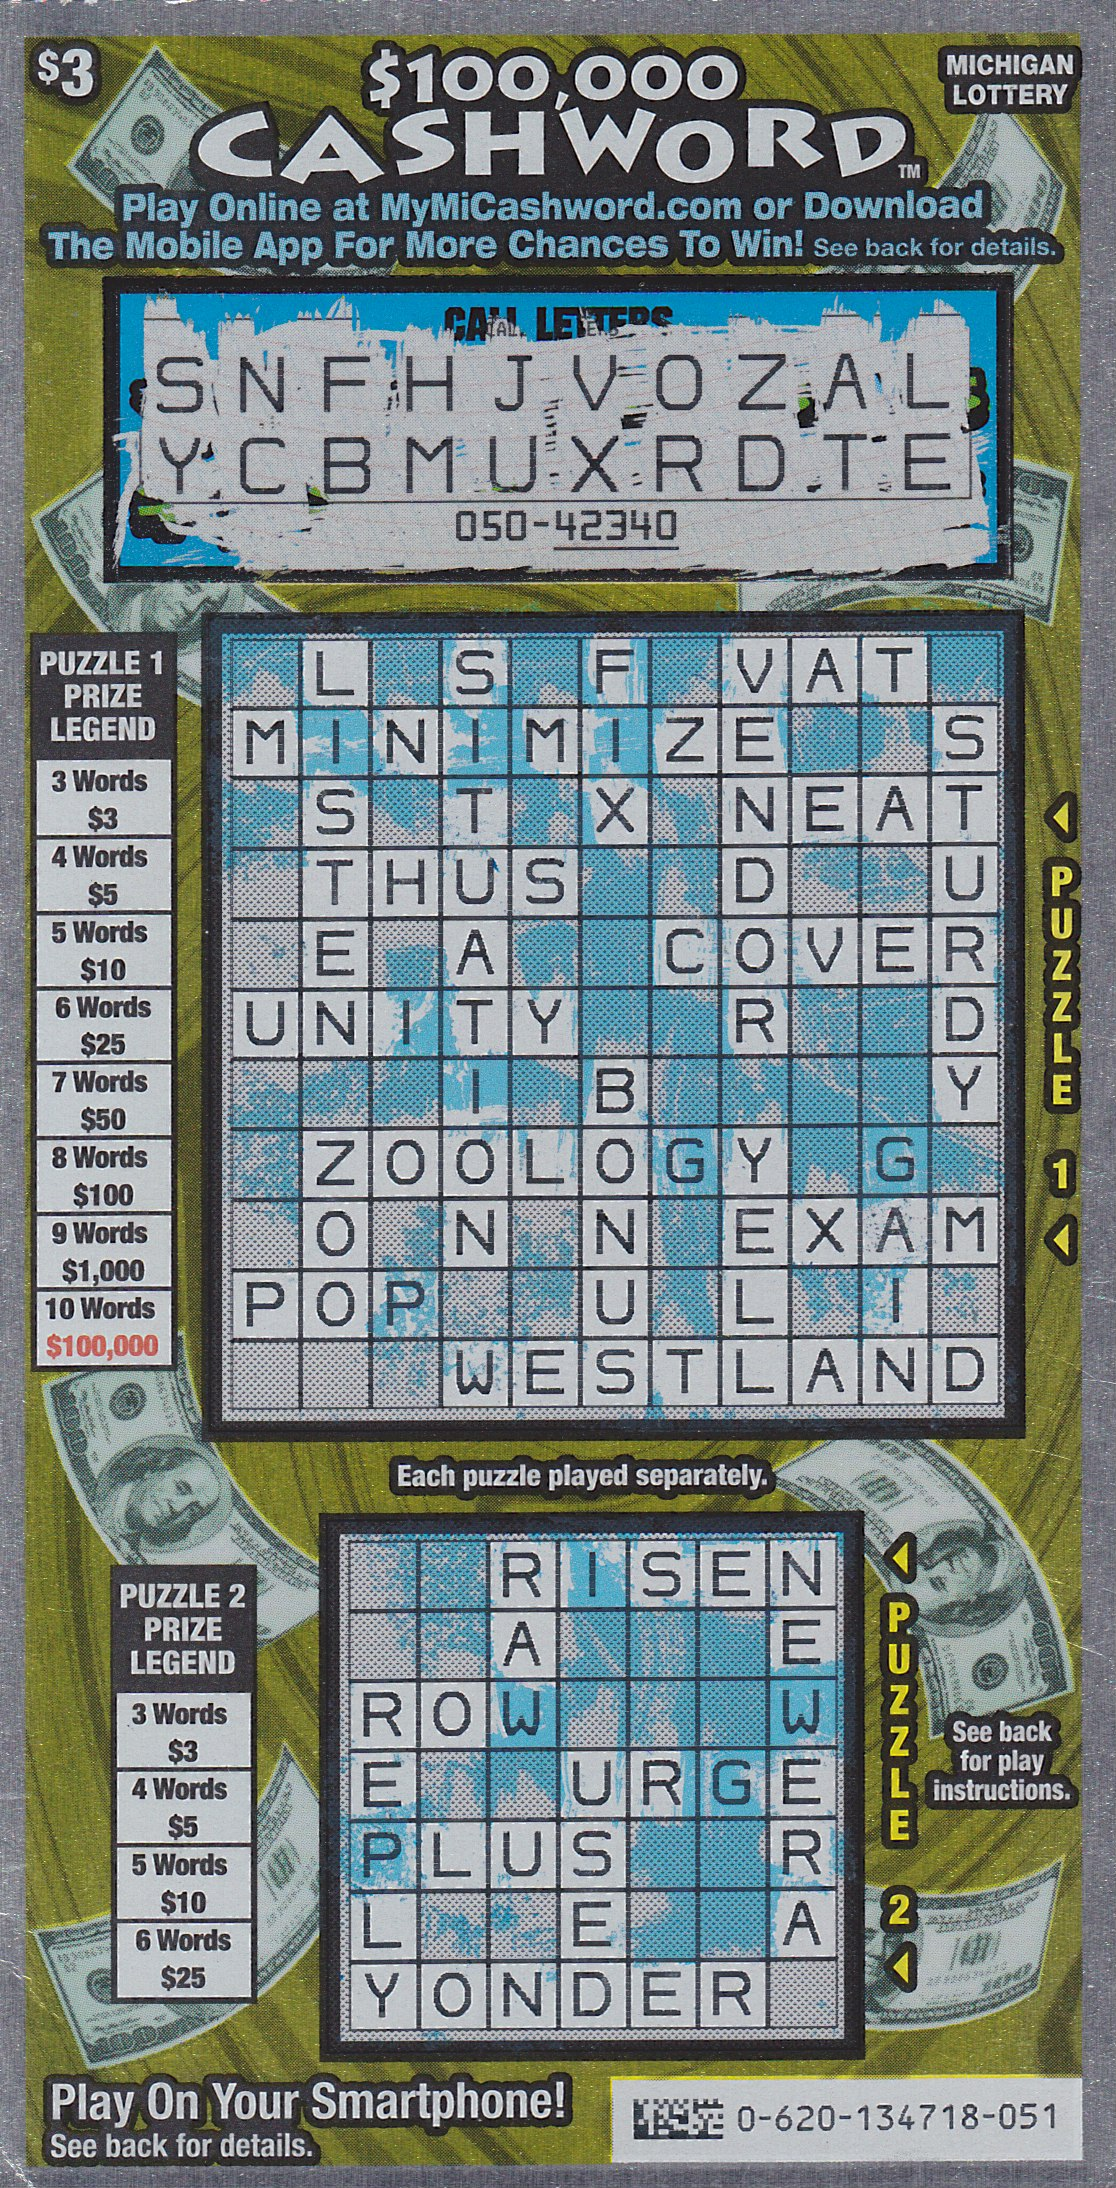 Isabella County Man Cashes in on $100,000 Prize Playing